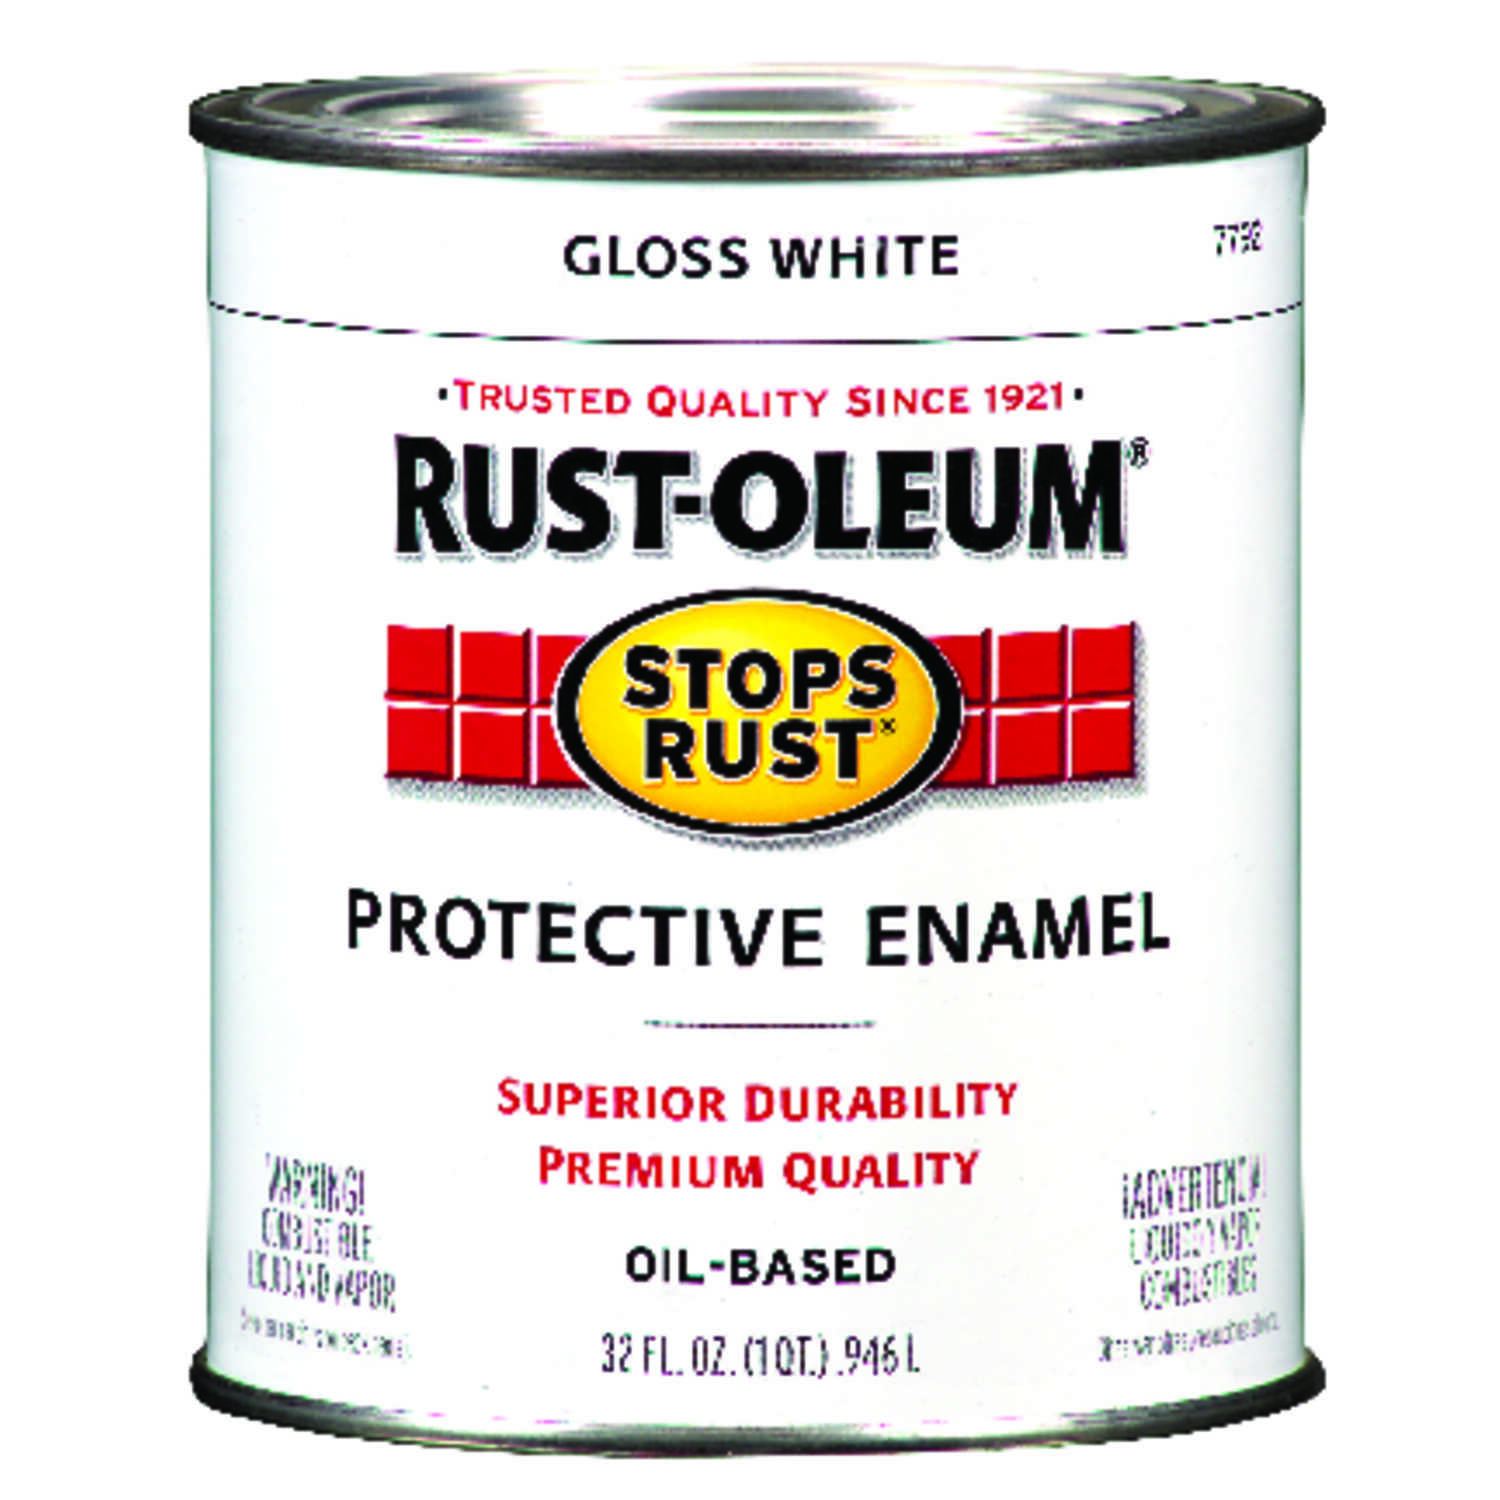 Rust-Oleum  Indoor and Outdoor  Gloss  White  Protective Enamel  1 qt.